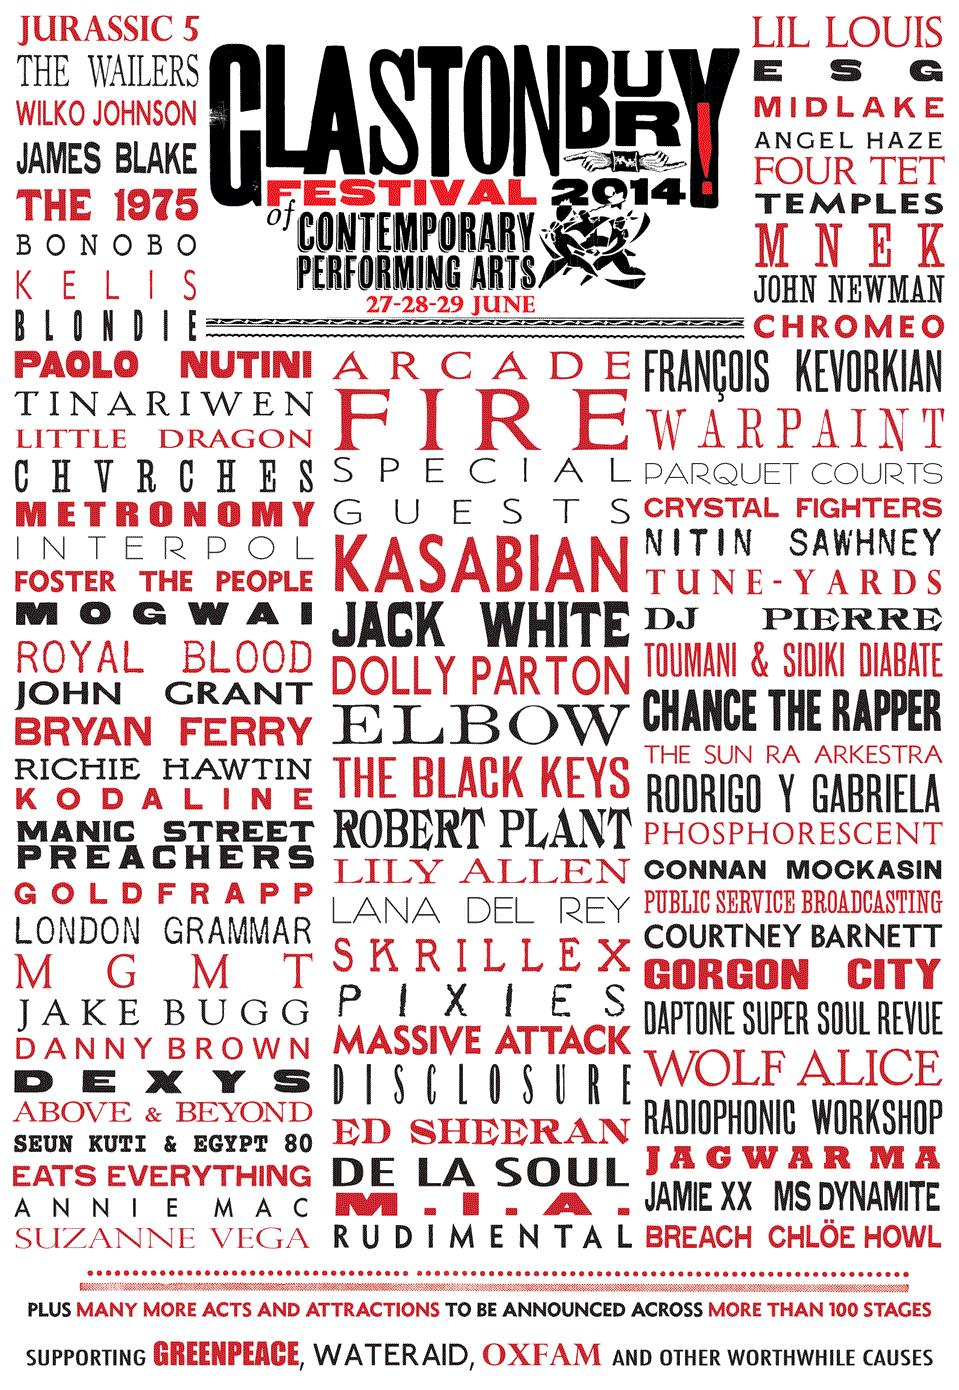 Glastonbury 2014 line-up 1